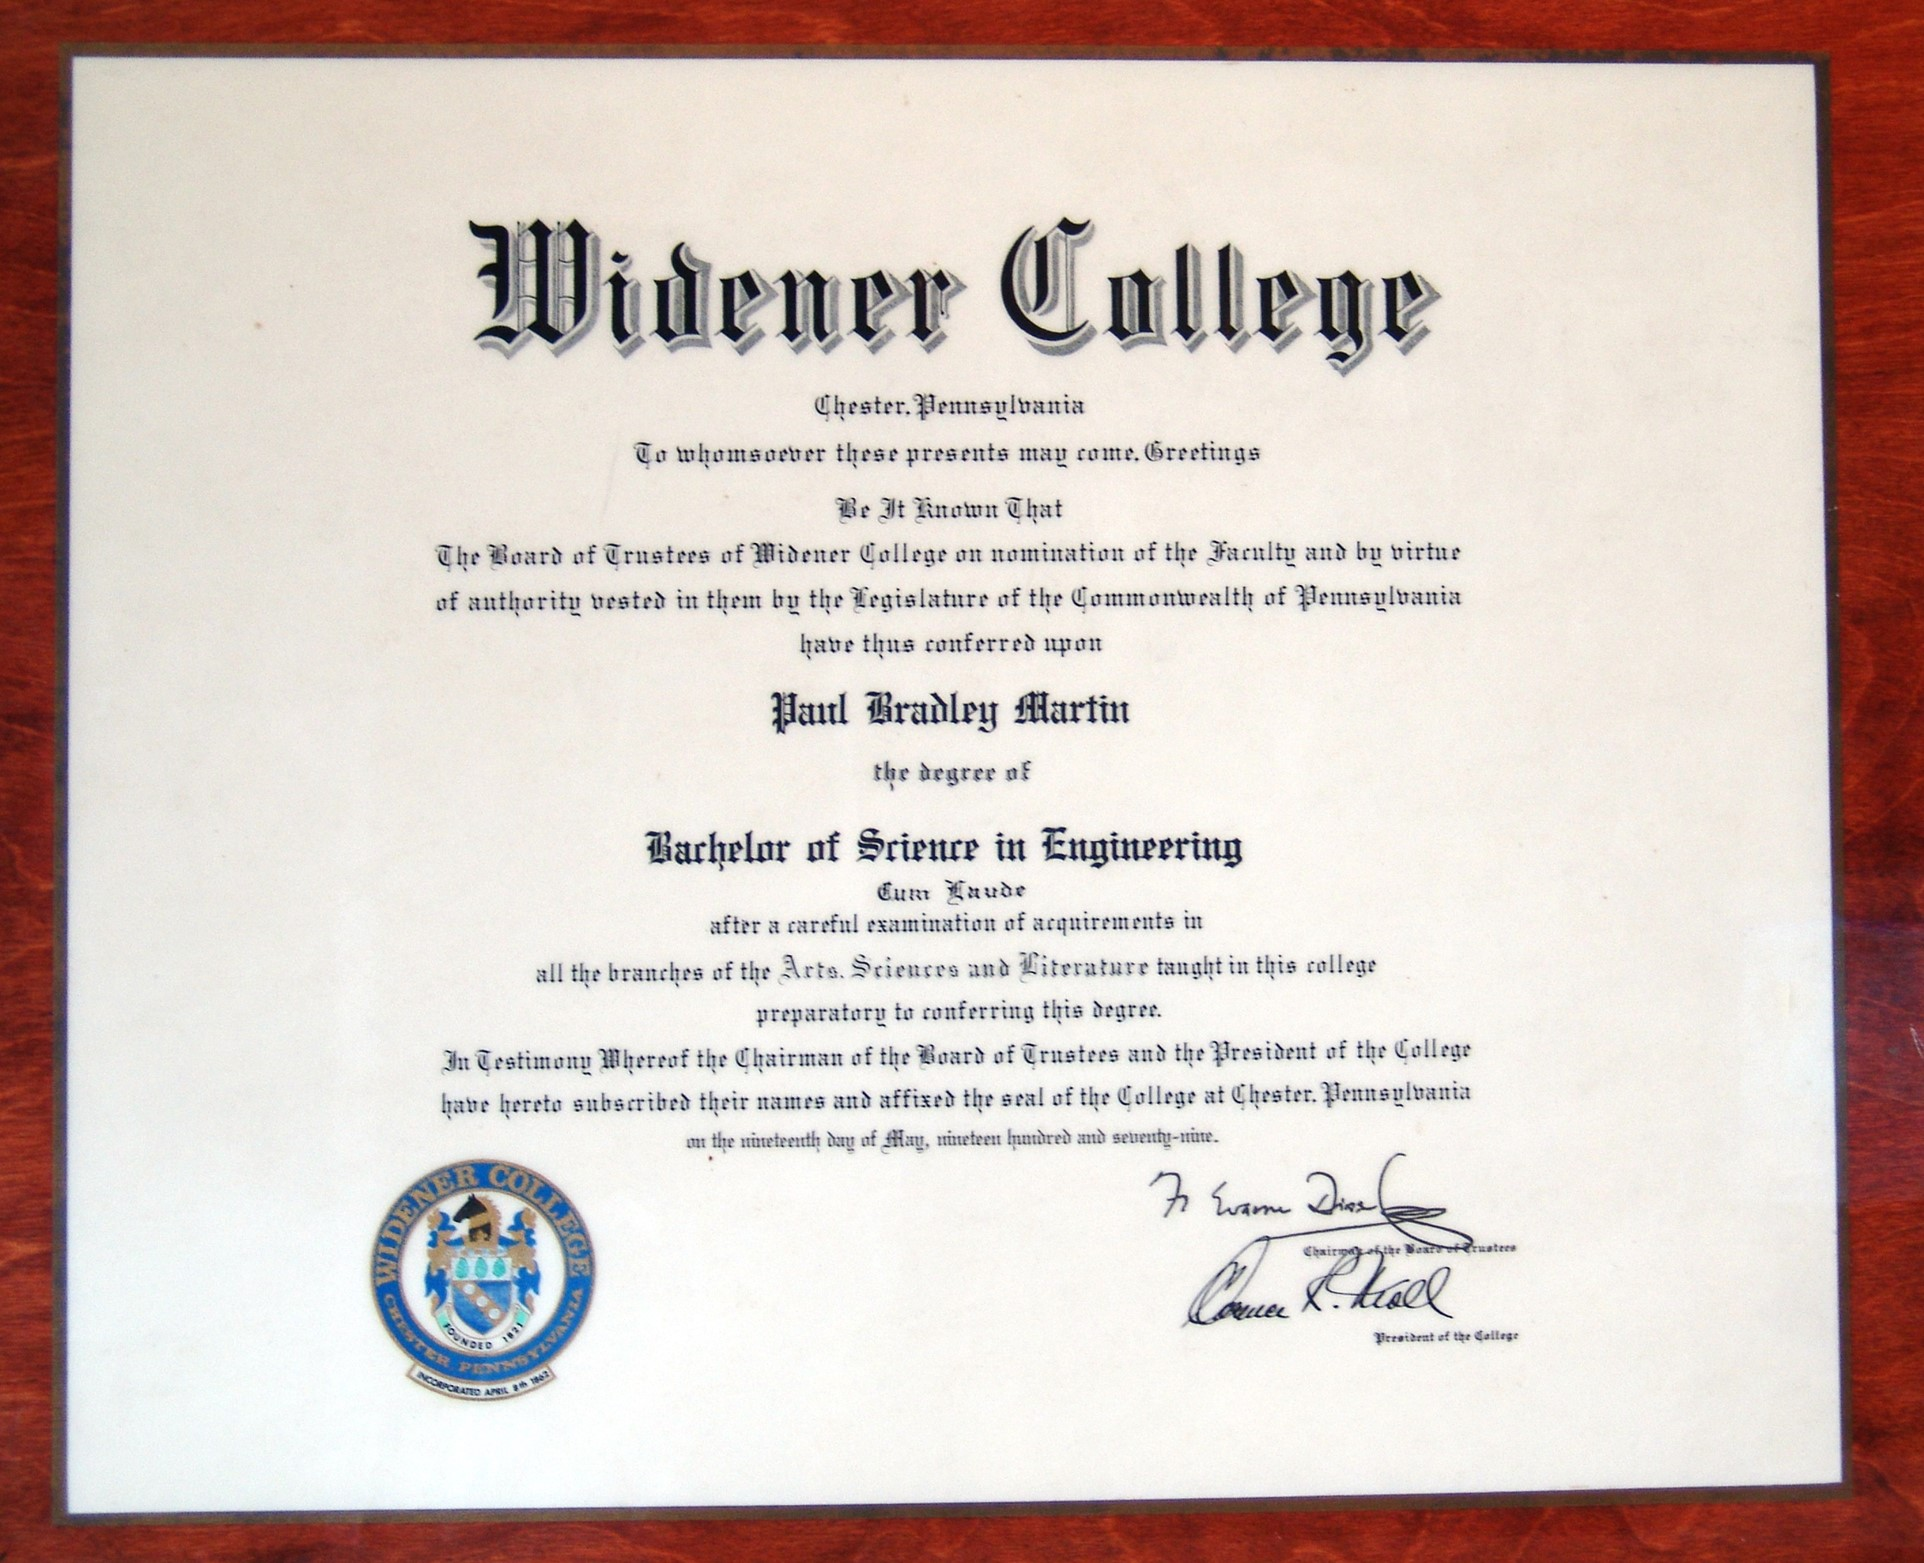 Proof that I graduated from Widener College back in 1979. My mother had a thing about laminating important documents.